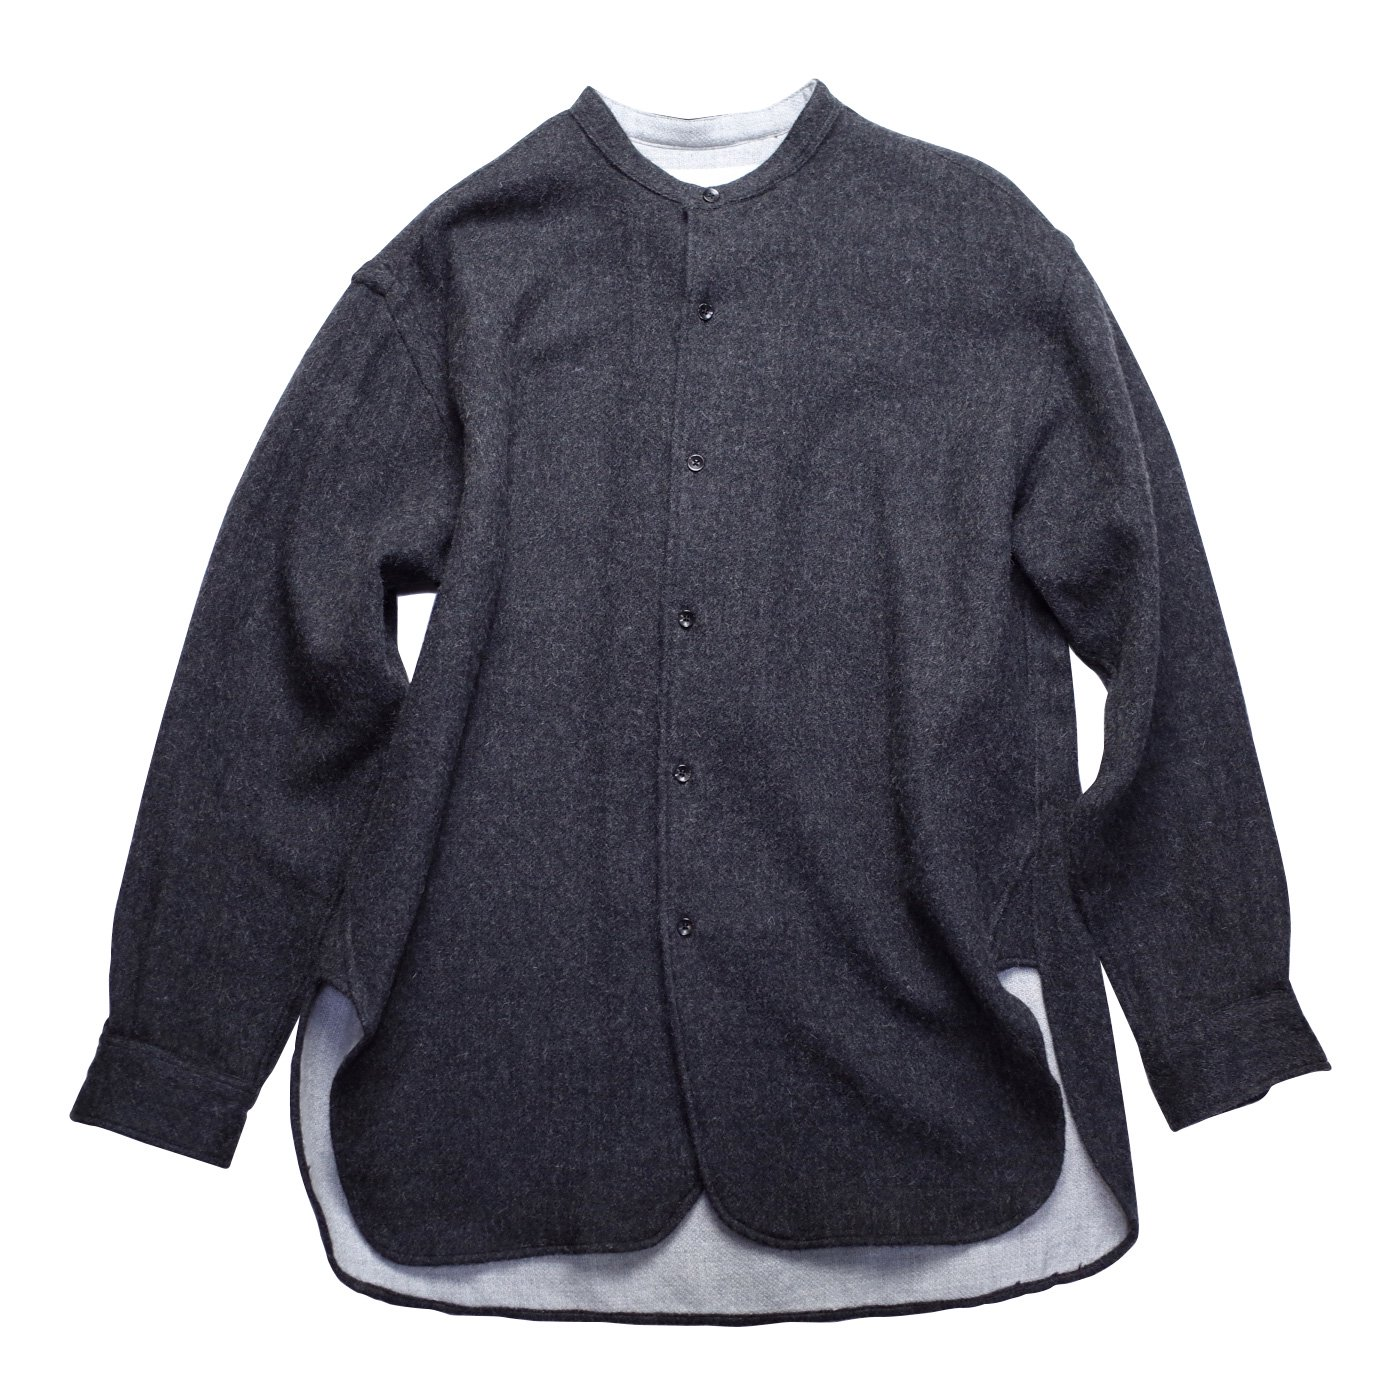 THE INOUE BROTHERS...-Banded Collar Shirt/DARK GREY-men's